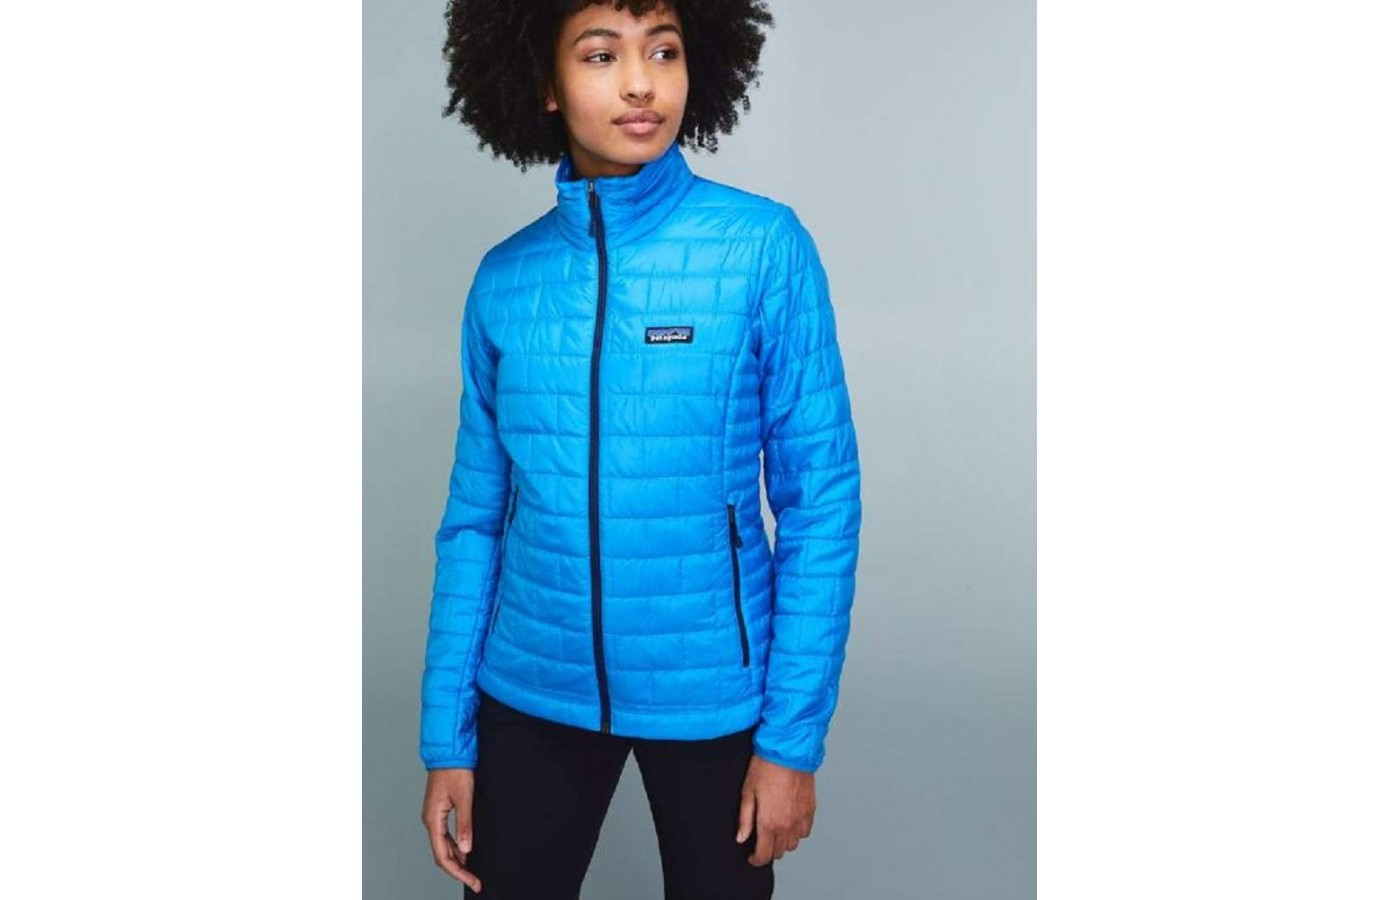 Like many Patagonia products, the sleek jacket is favored because it looks good and performs in various situations.